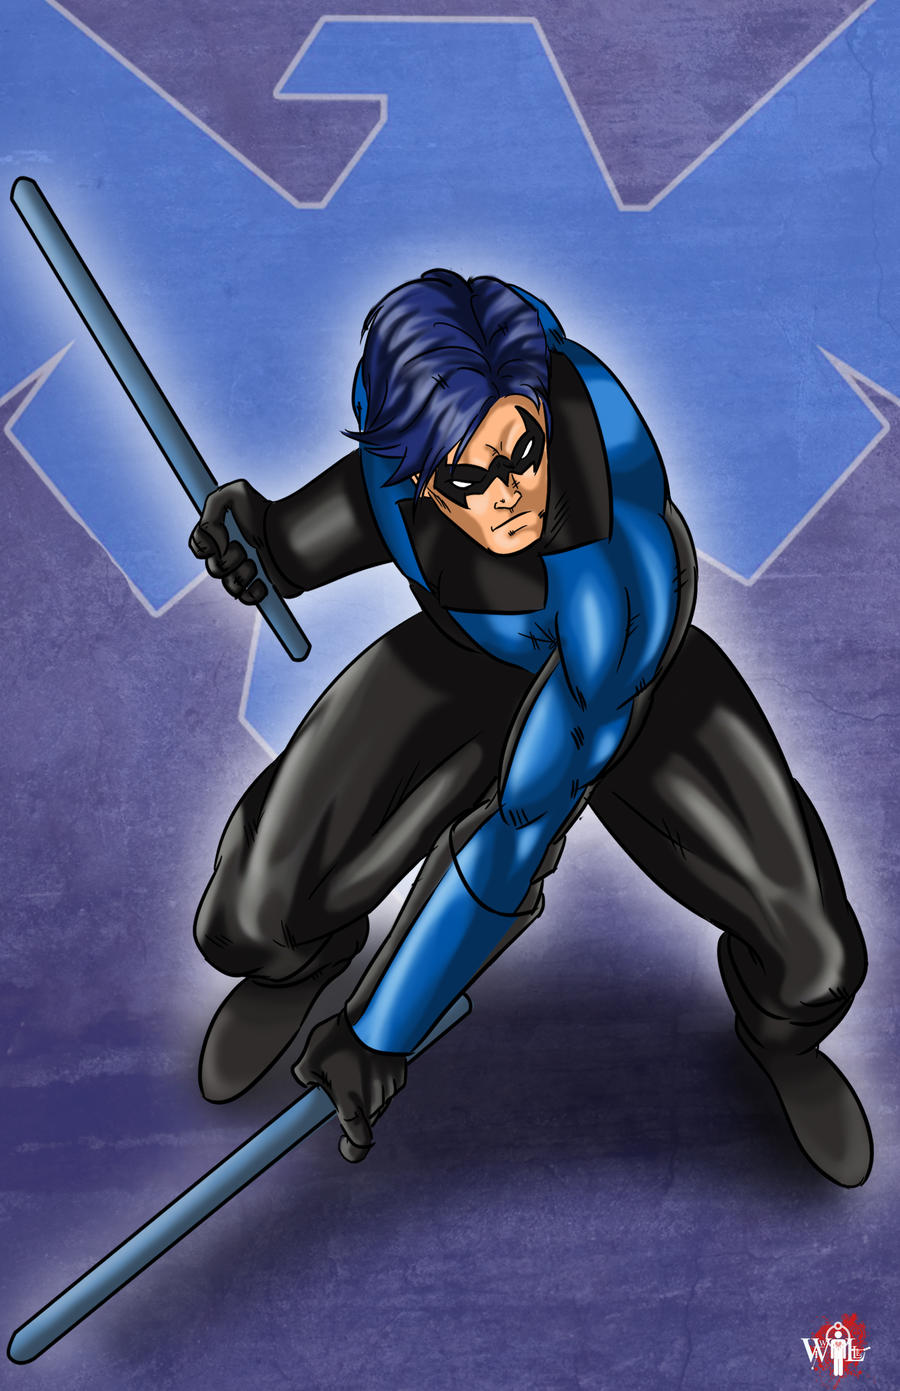 Dc Comics Fans : Nightwing by wil woods on deviantart